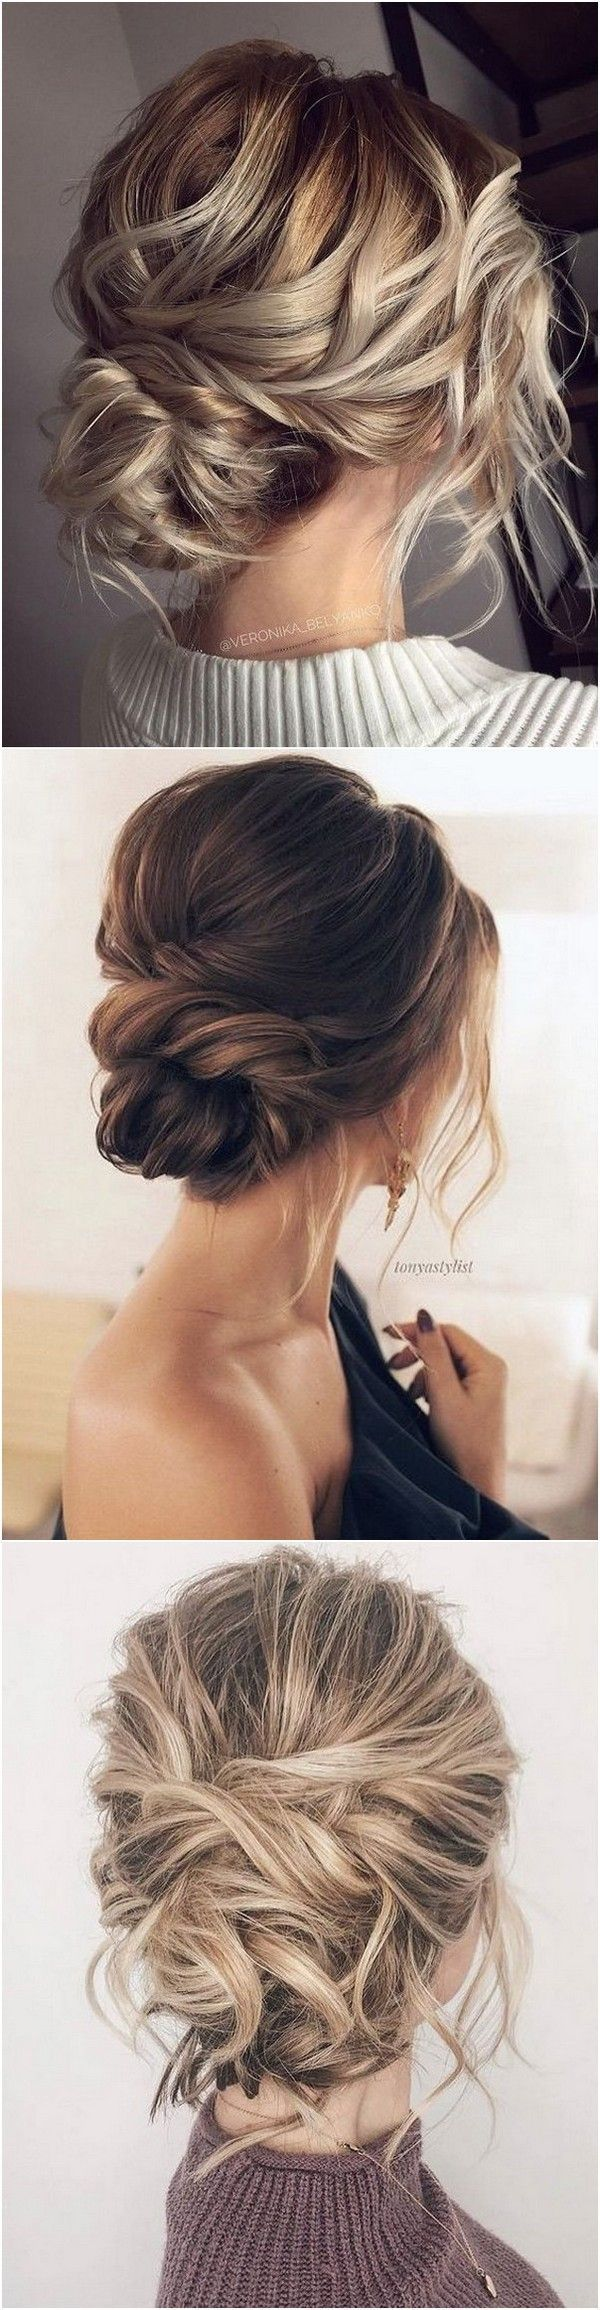 18 Trending Messy Updos Wedding Hairstyles You'll Love | Bridal +